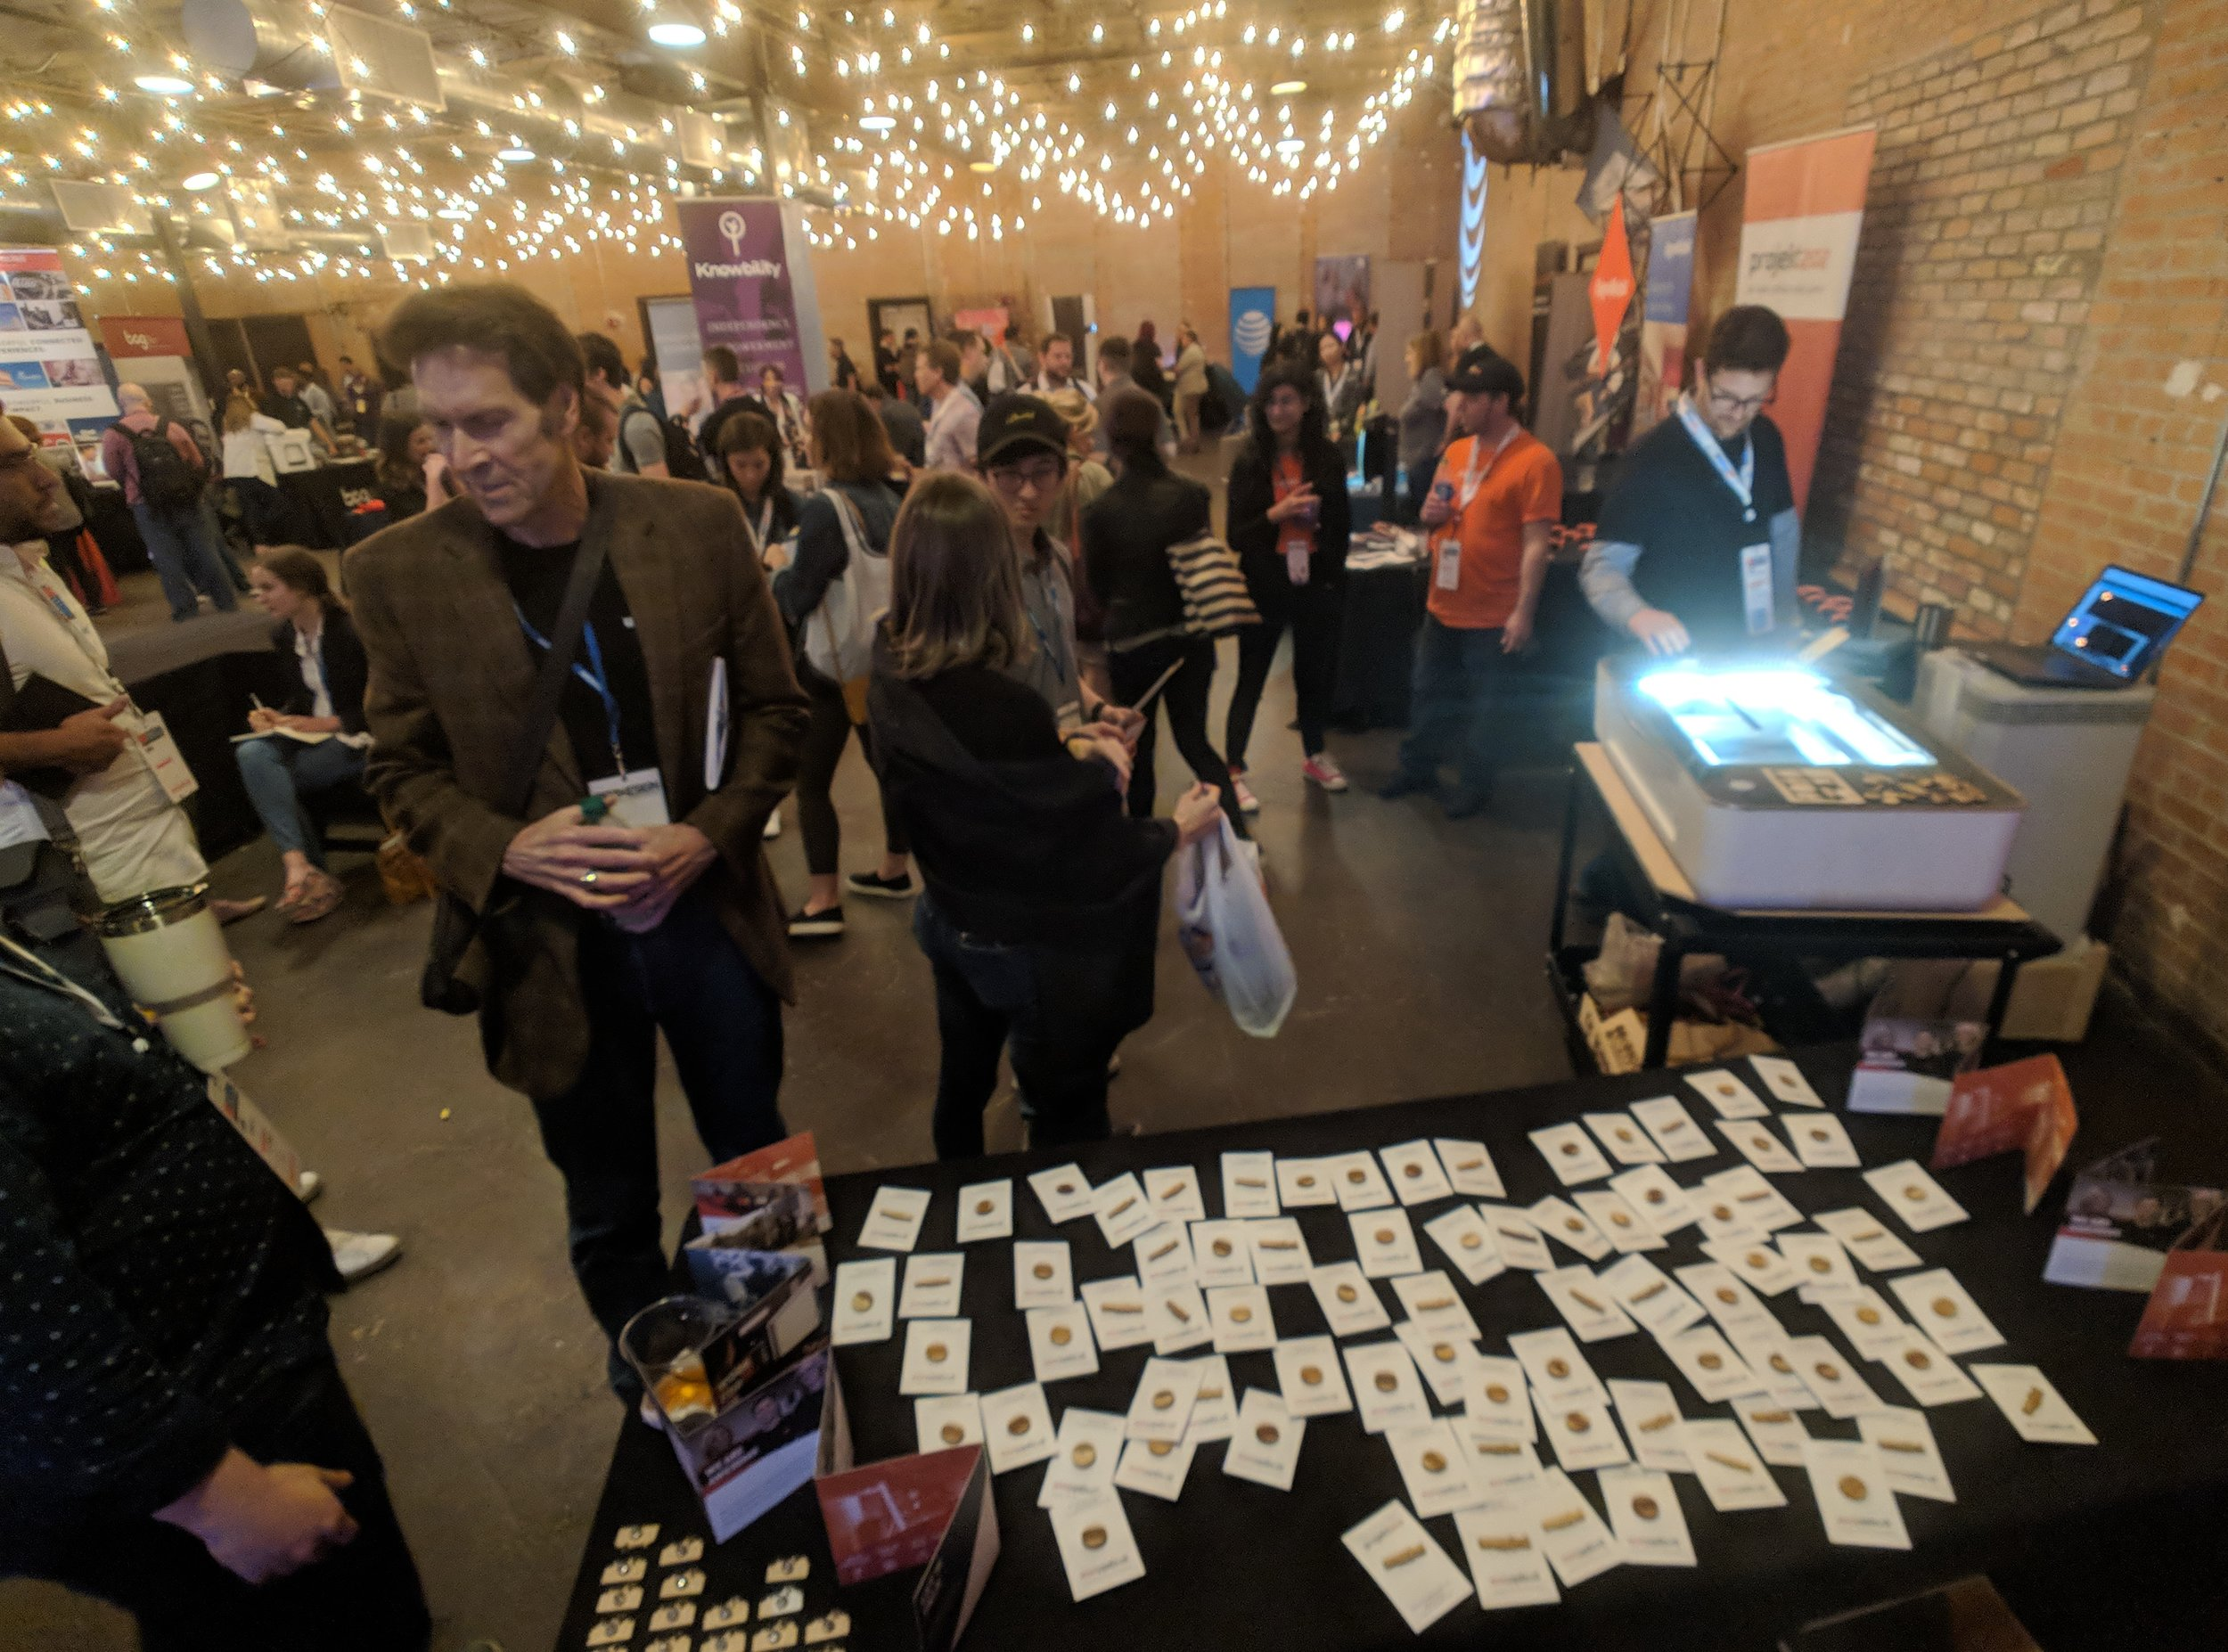 Visit projekt202's booth at the 2019 Big Design Conference in Dallas for plenty of giveaways.